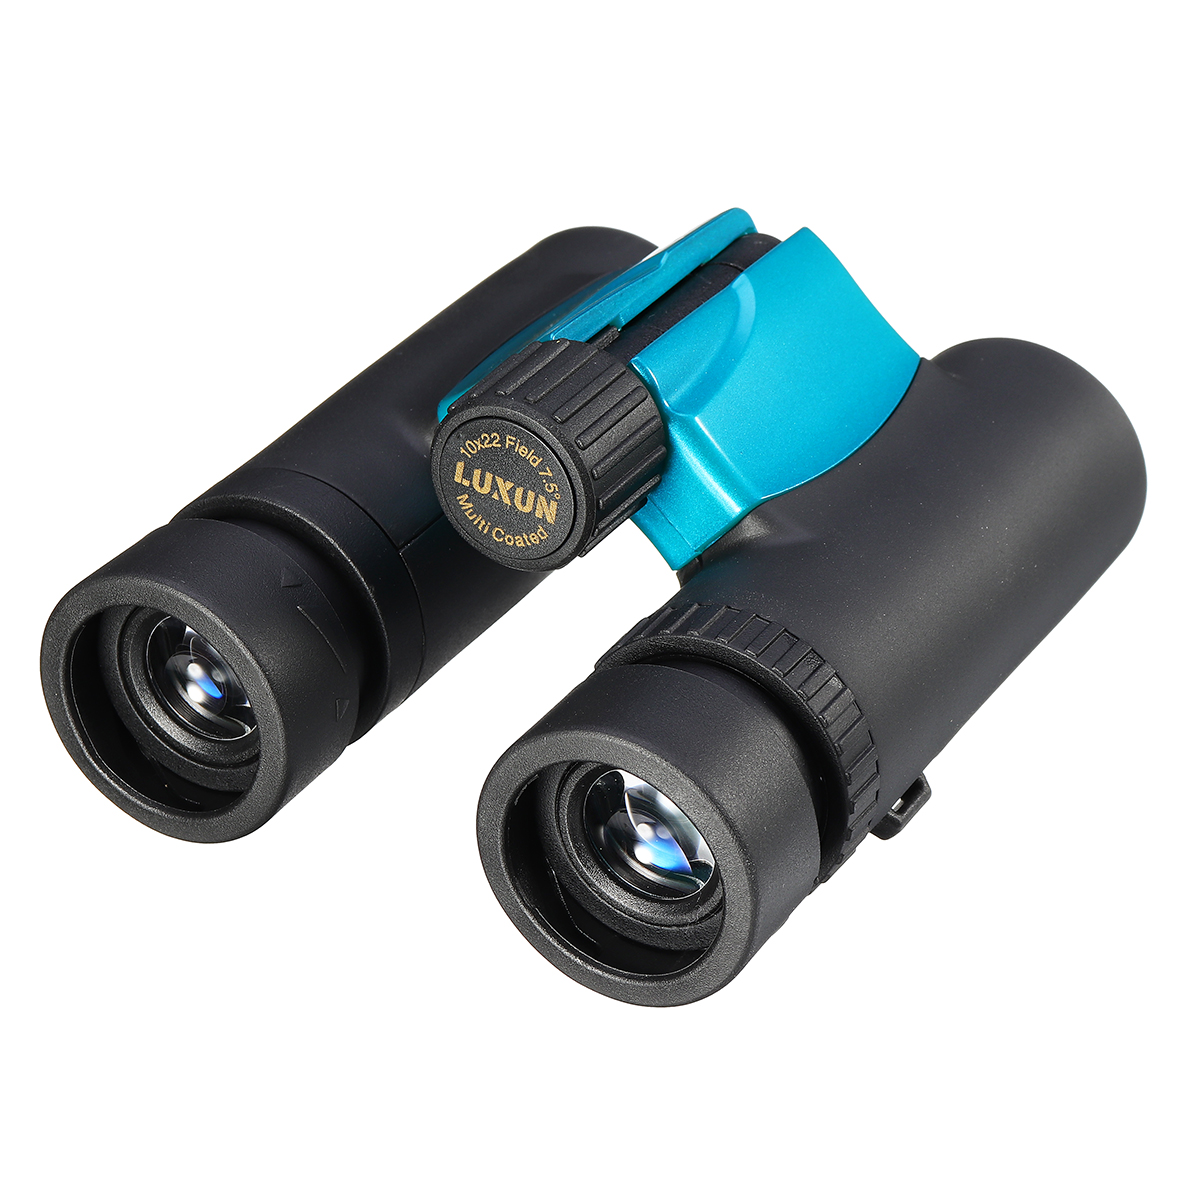 10x22 Outdoor Pocket Binocular HD Optical Day Night Vision Teles